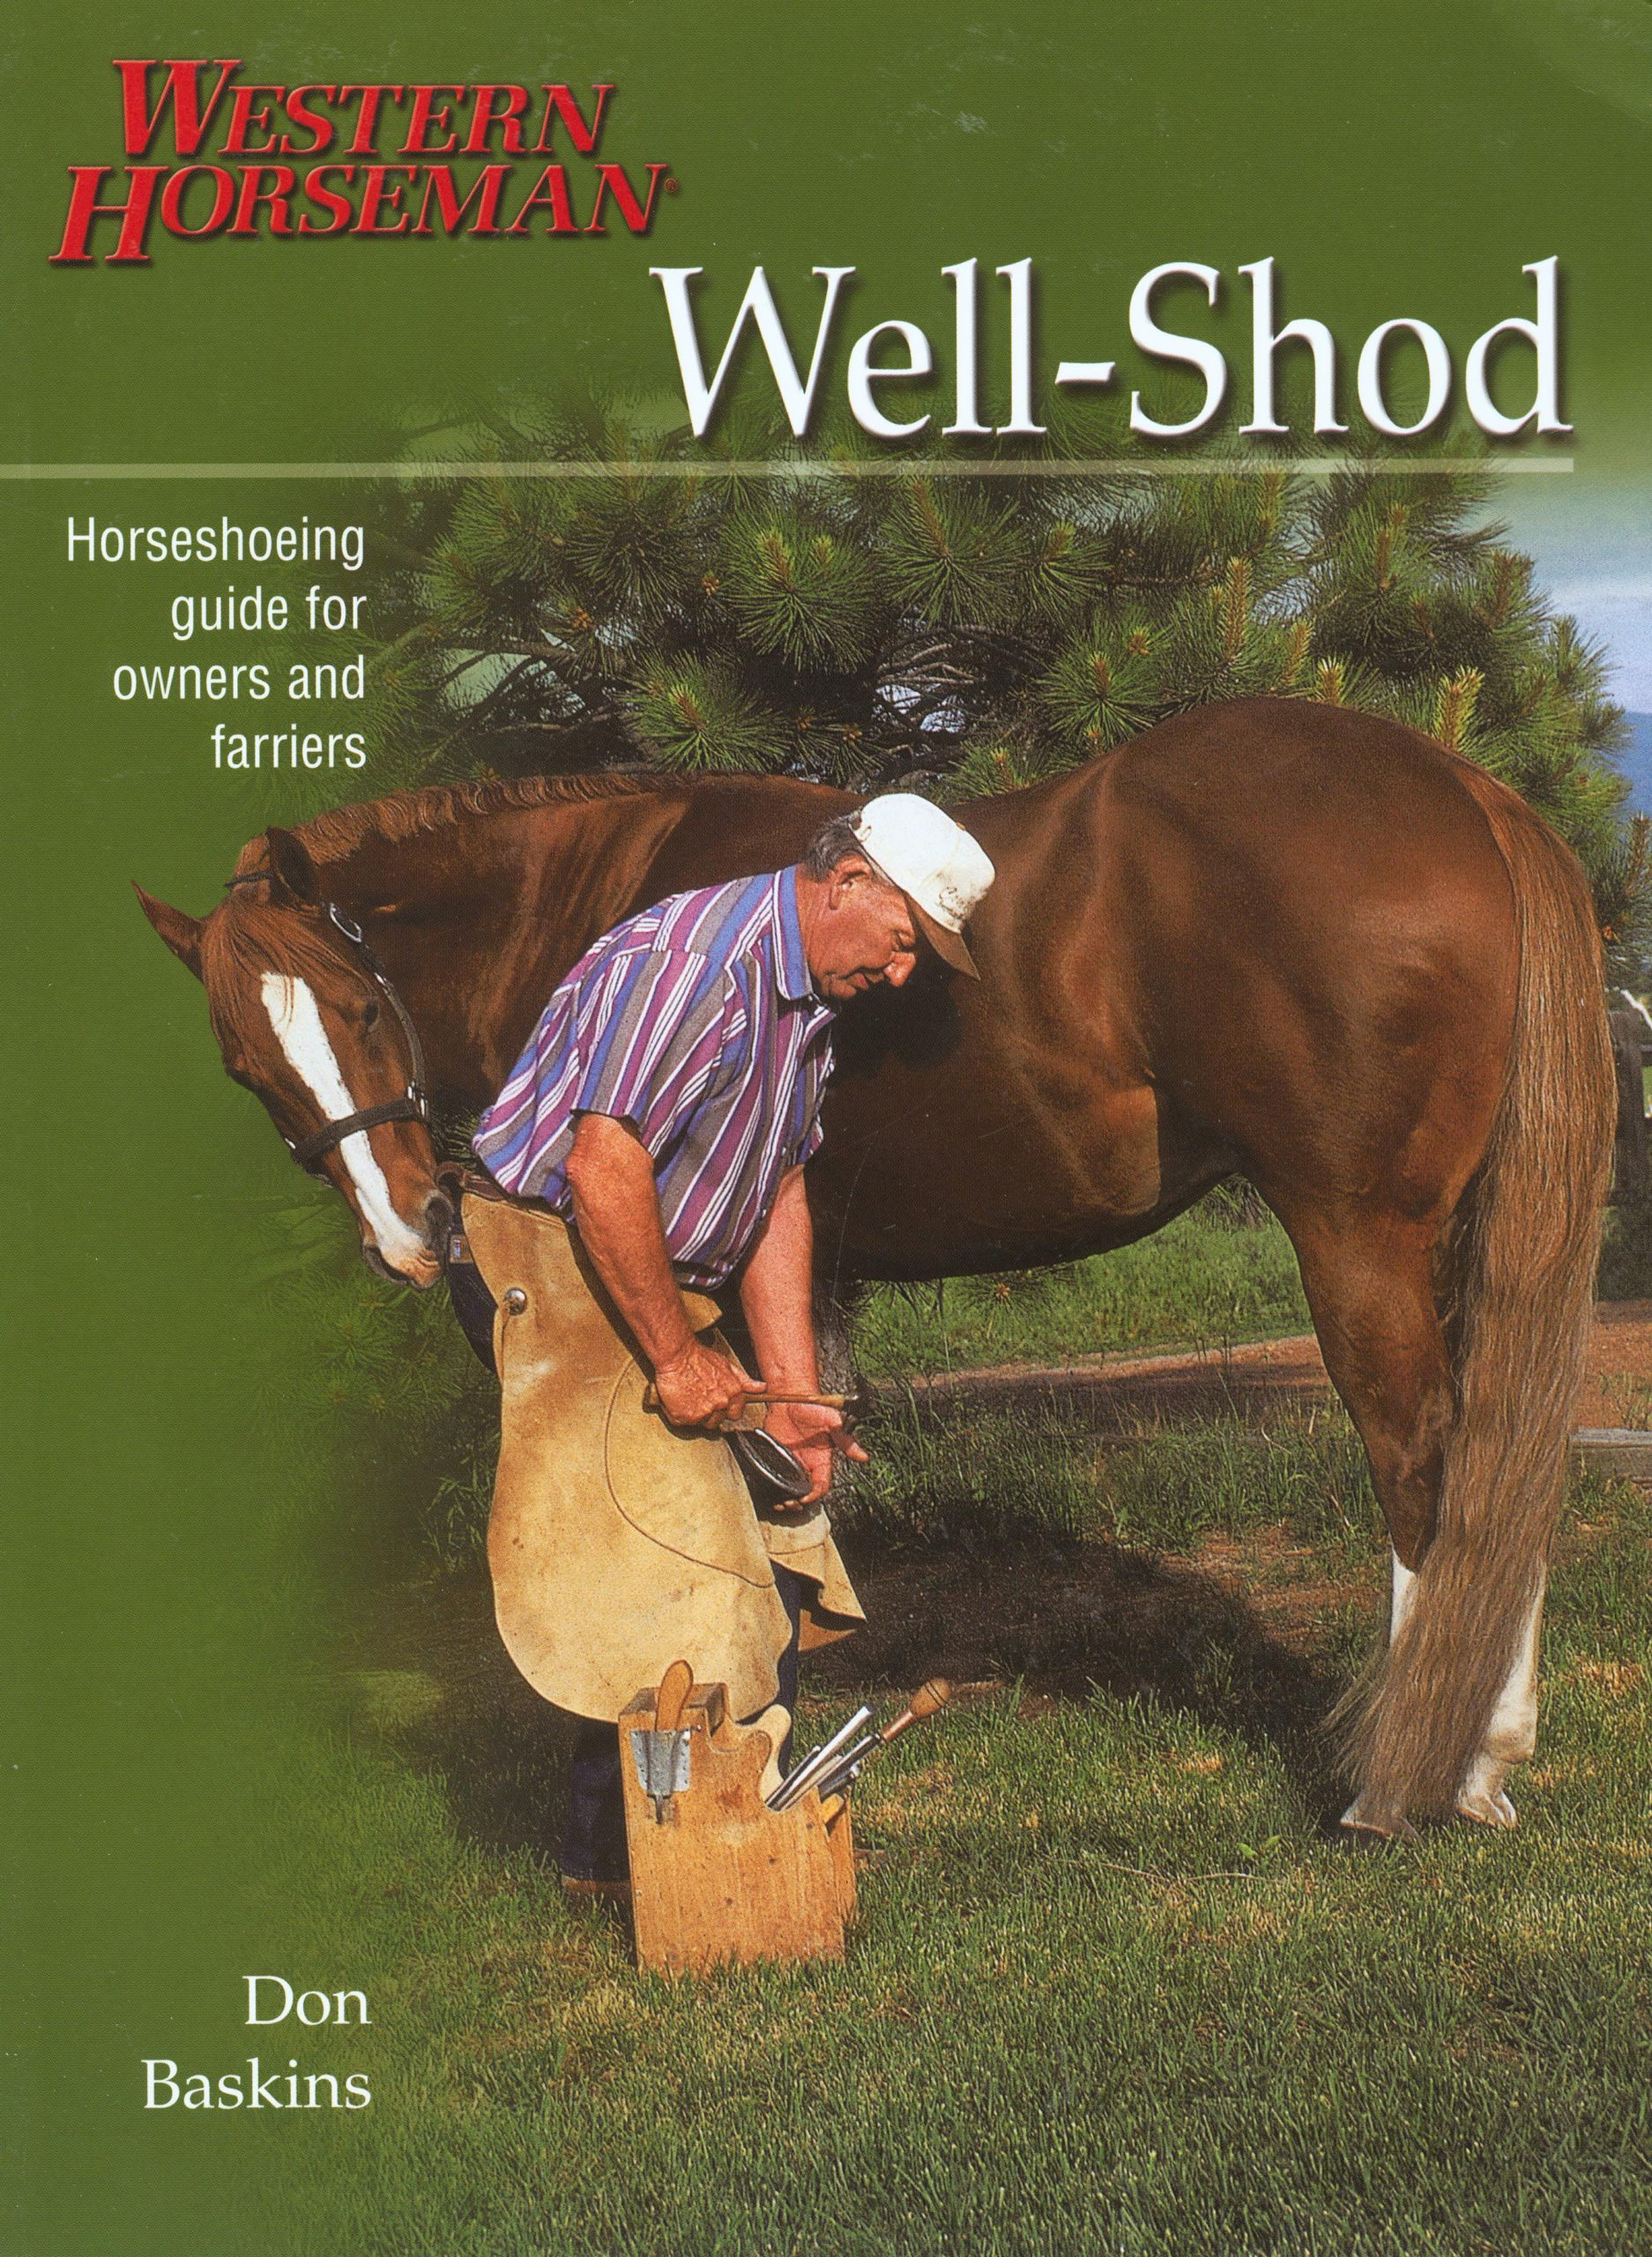 well-shod-a-horseshoeing-guide-for-owners-farriers-western-horseman-books